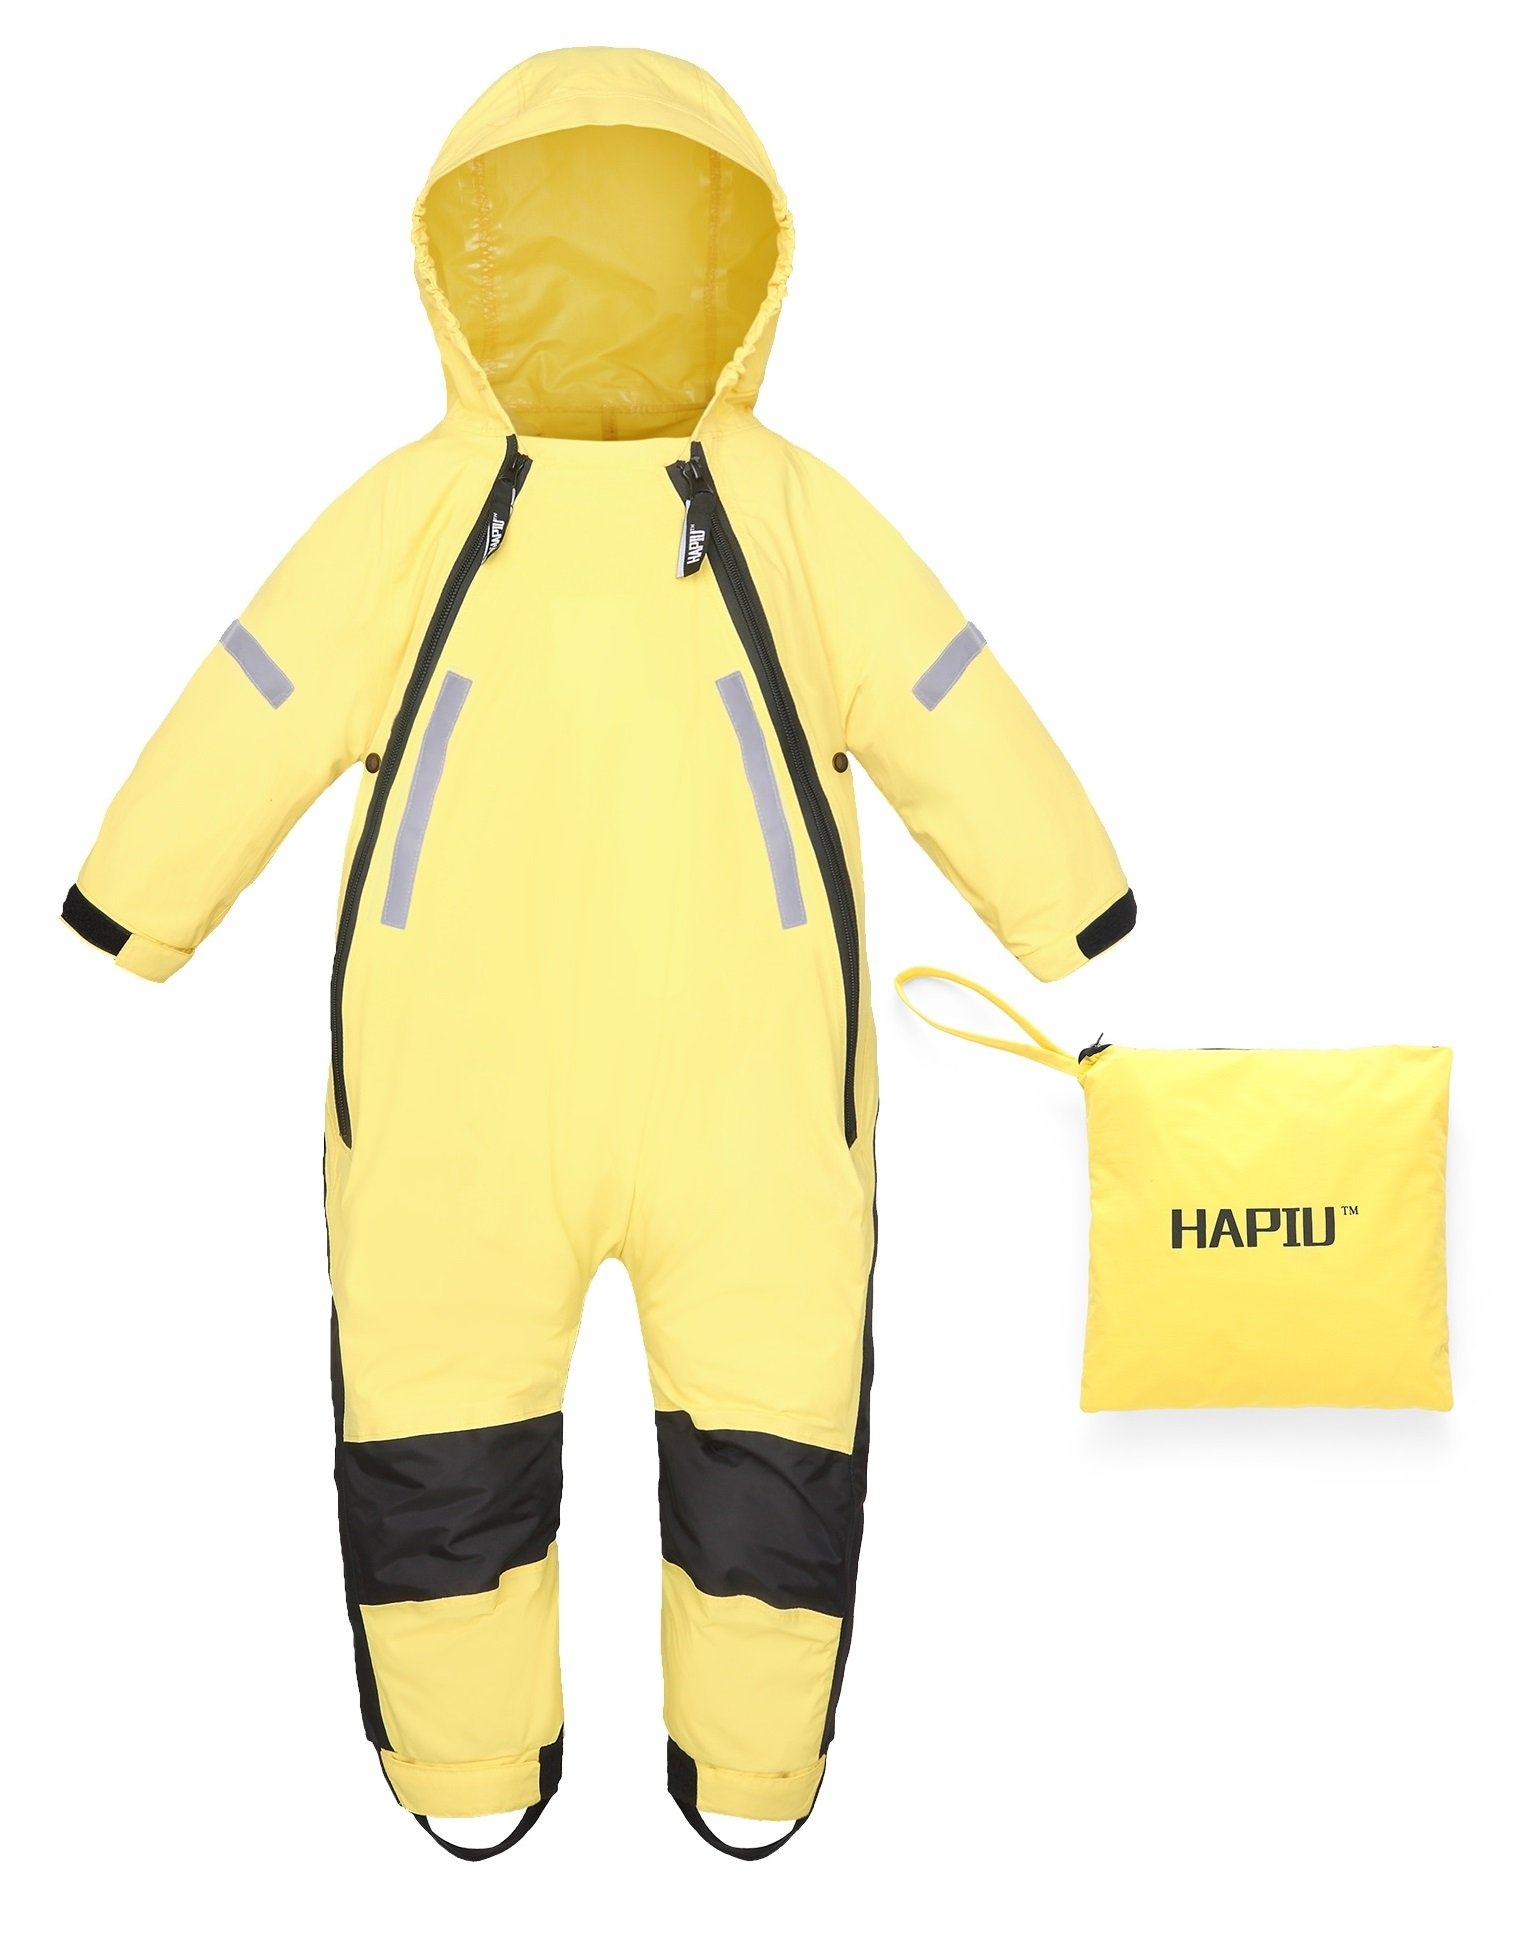 HAPIU Kids Toddler Rain Suit Muddy Buddy Waterproof Coverall,Yellow,3T,Upgraded by HAPIU